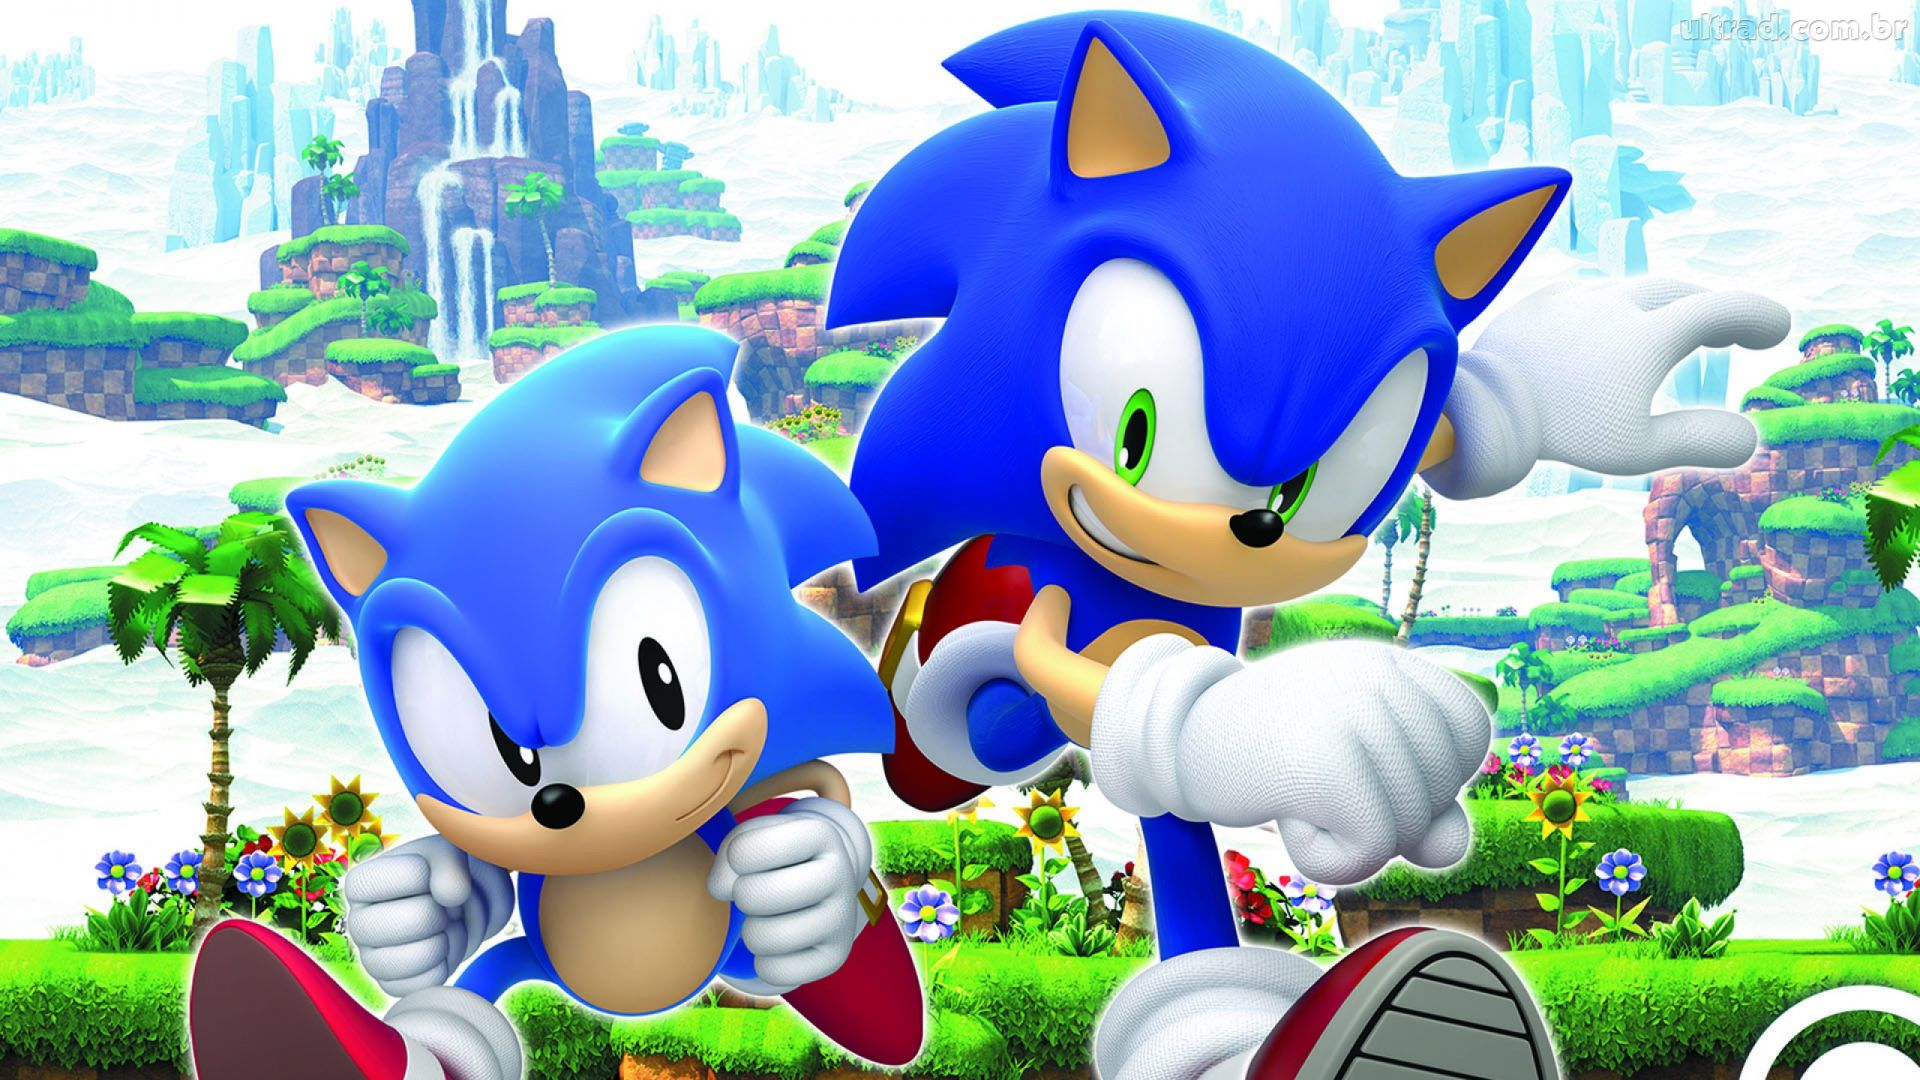 Fan Made Sonic The Hedgehog 2006 Remake Receives Public Demo Eteknix